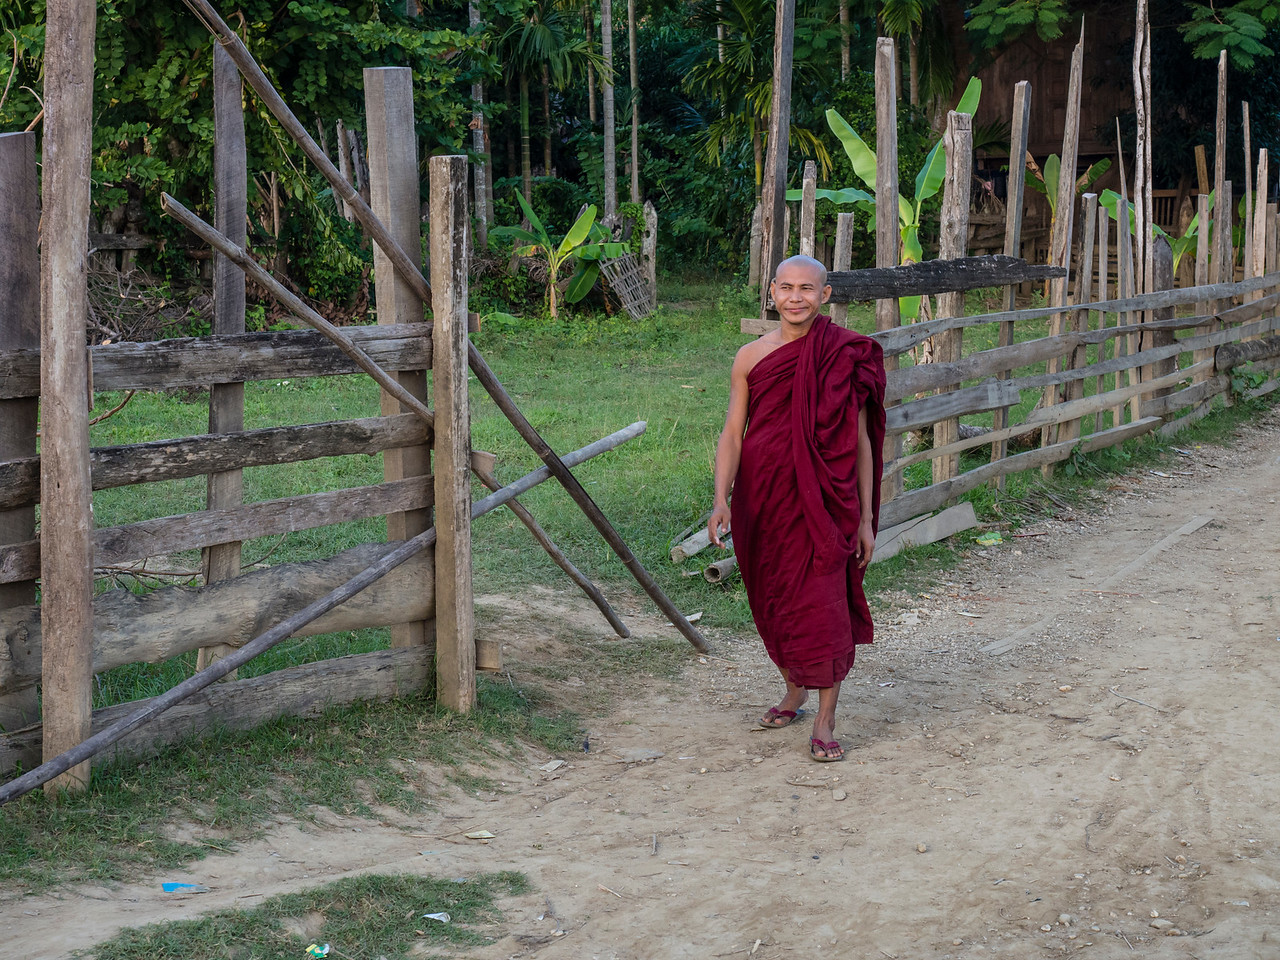 Youwa village, Chindwin River, Myanmar